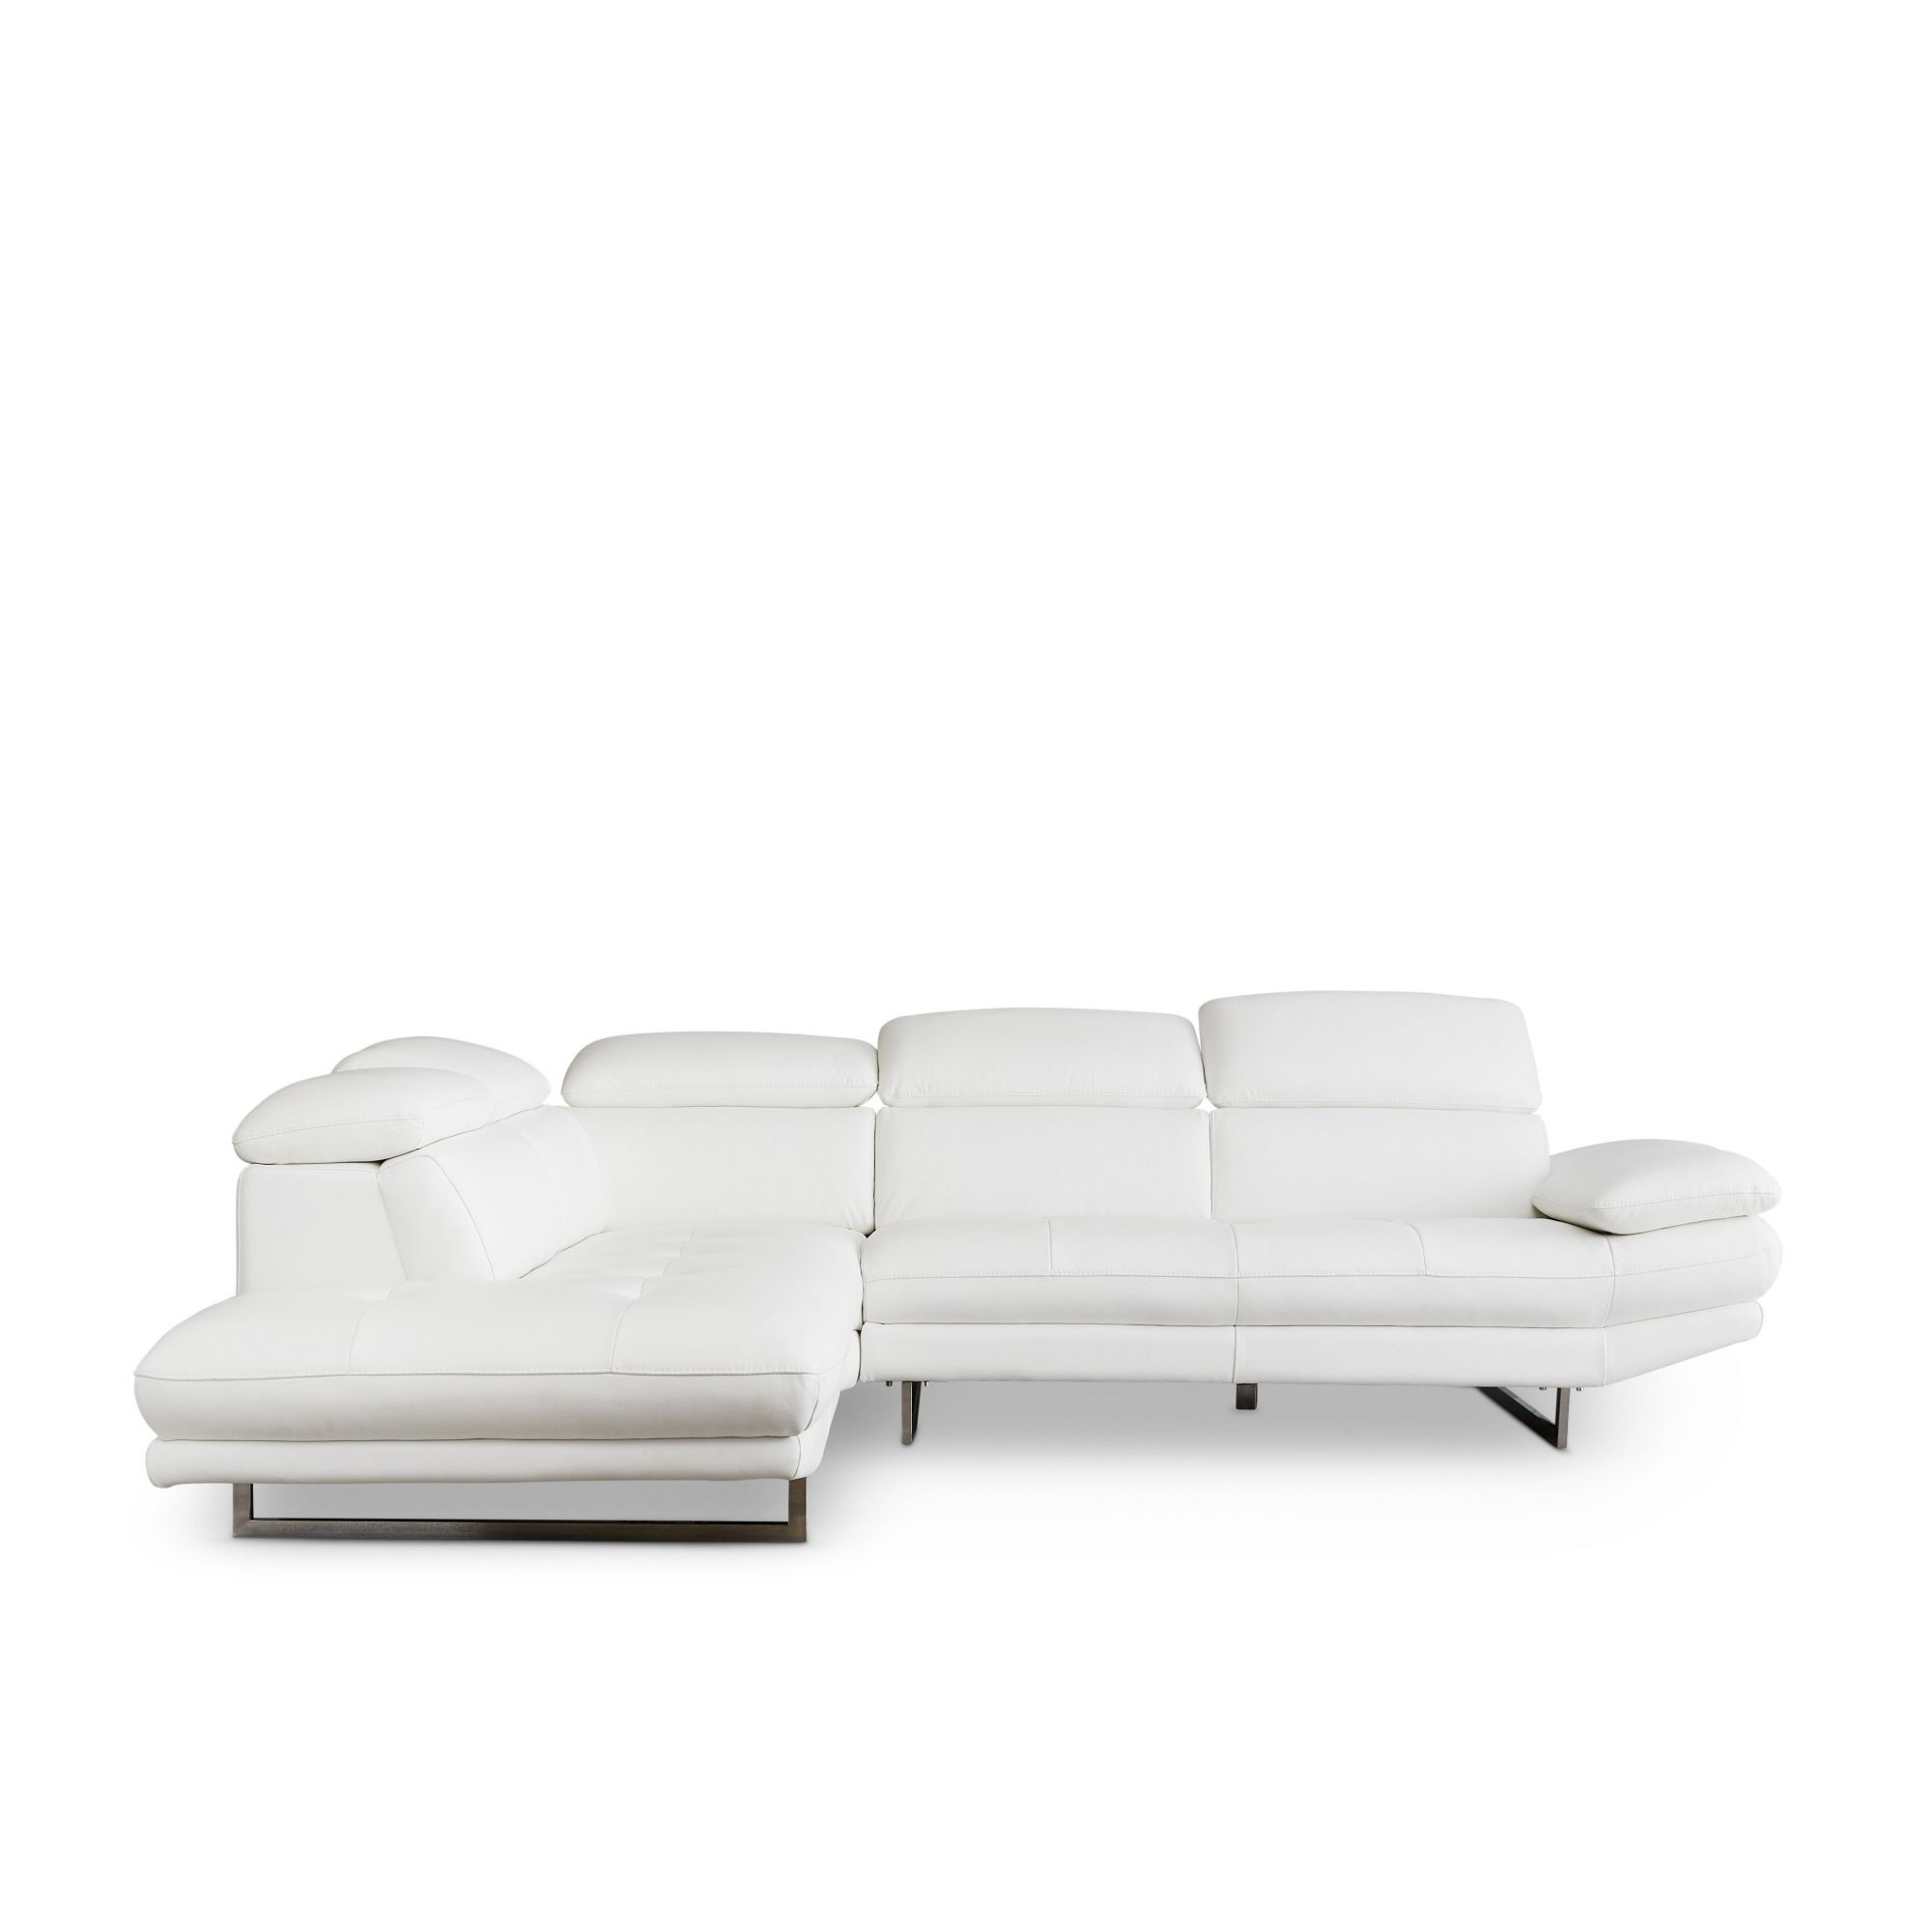 Diego Modular Chaise by Koala Living, a Sofas for sale on Style Sourcebook